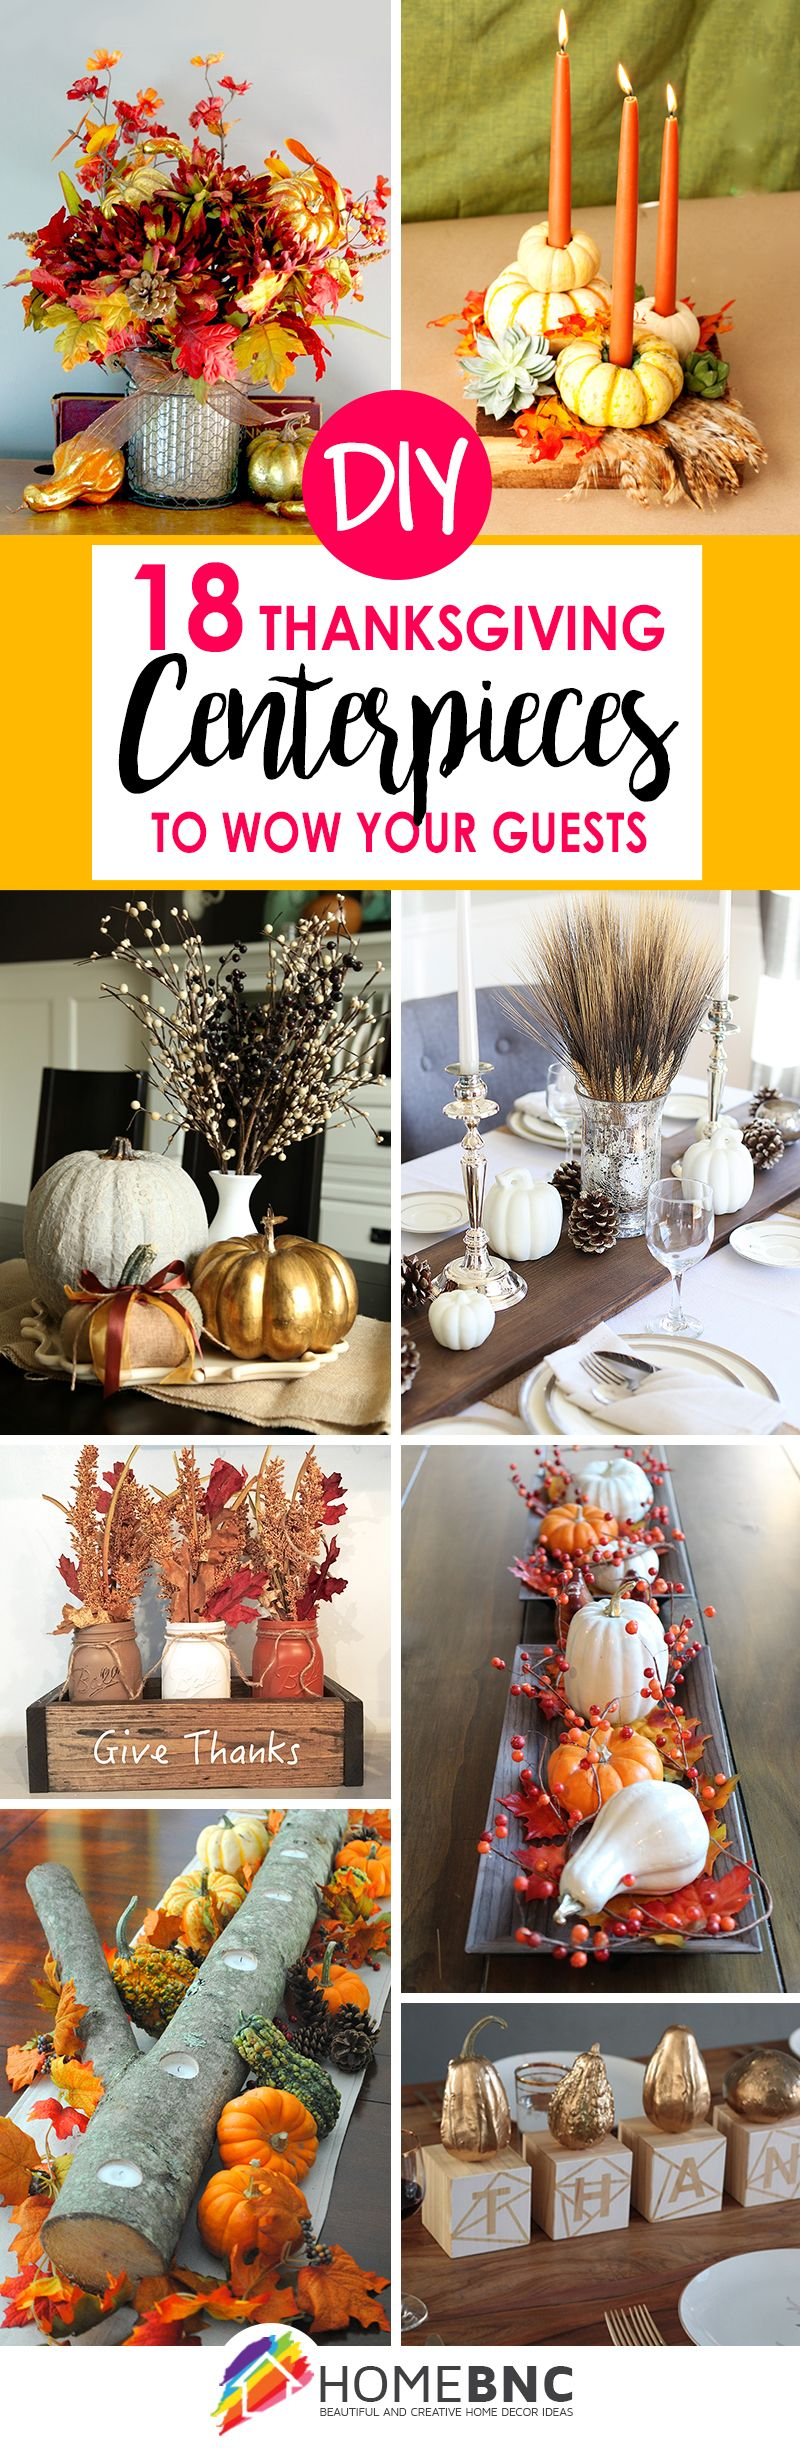 Diy thanksgiving wall decor - 18 Easy Diy Thanksgiving Centerpieces To Wow Your Guests